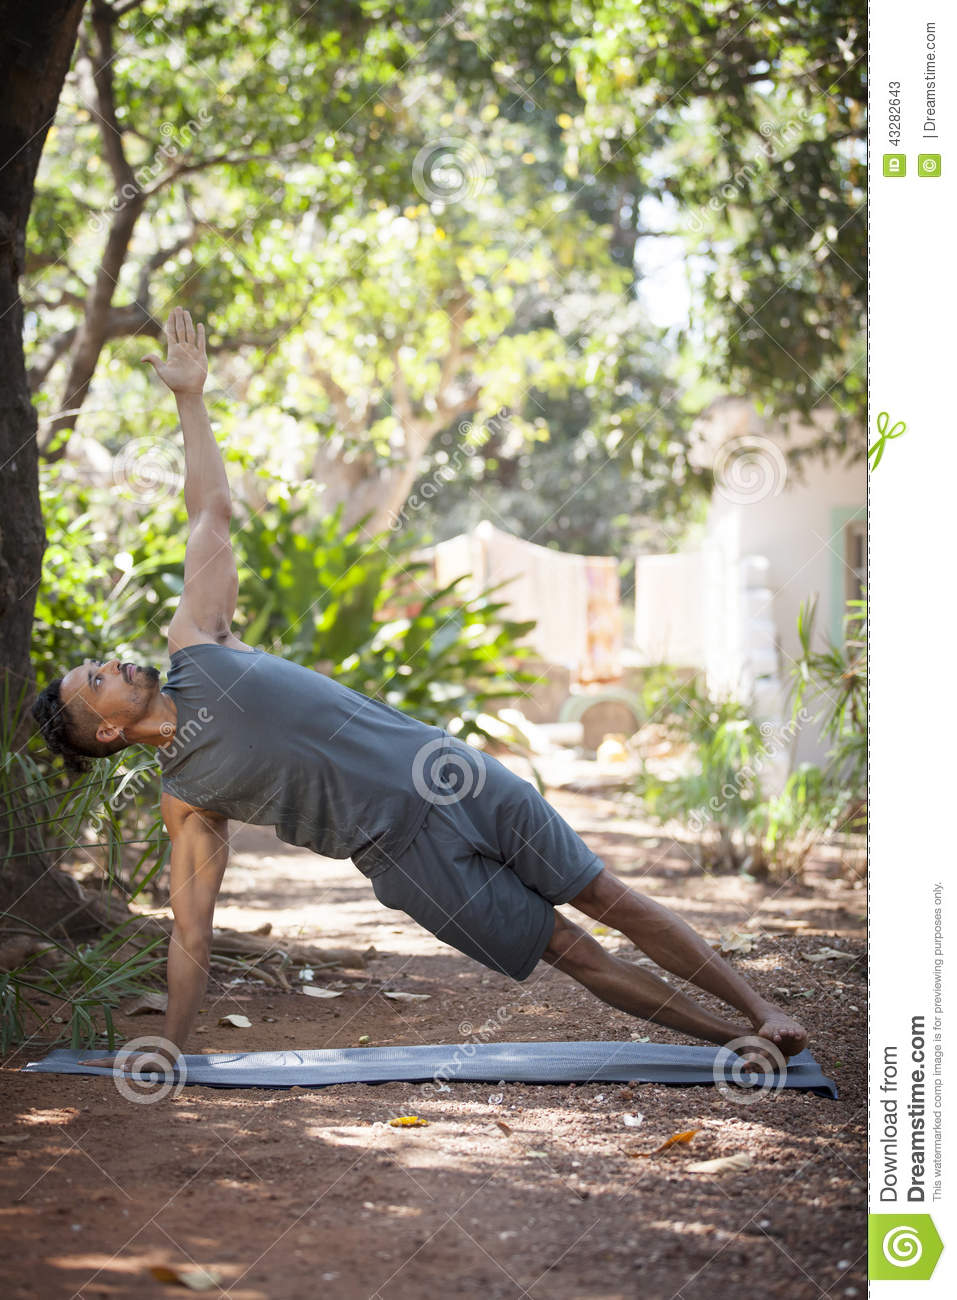 Yoga In Nature Stock Photo - Image: 43282643